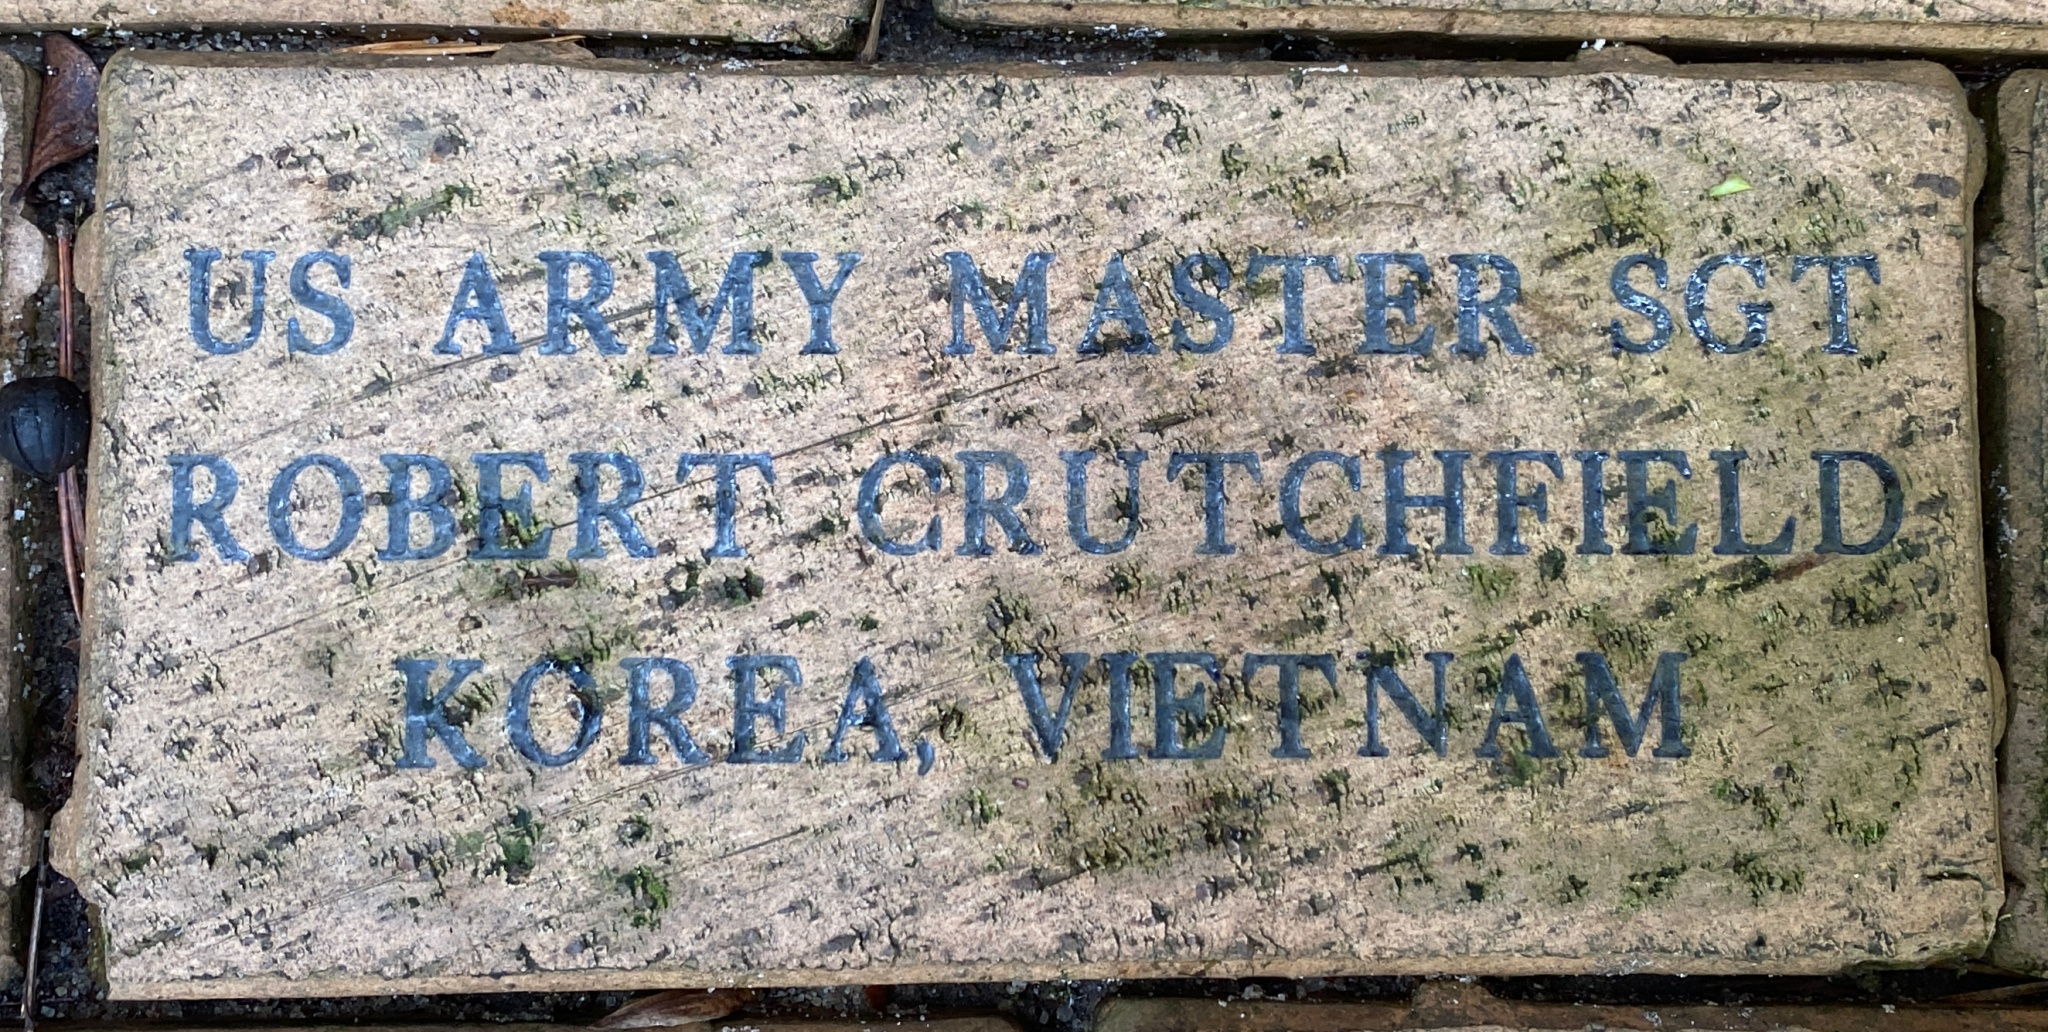 US ARMY MASTER SGT ROBERT CRUTCHFIELD KOREA, VIETNAM